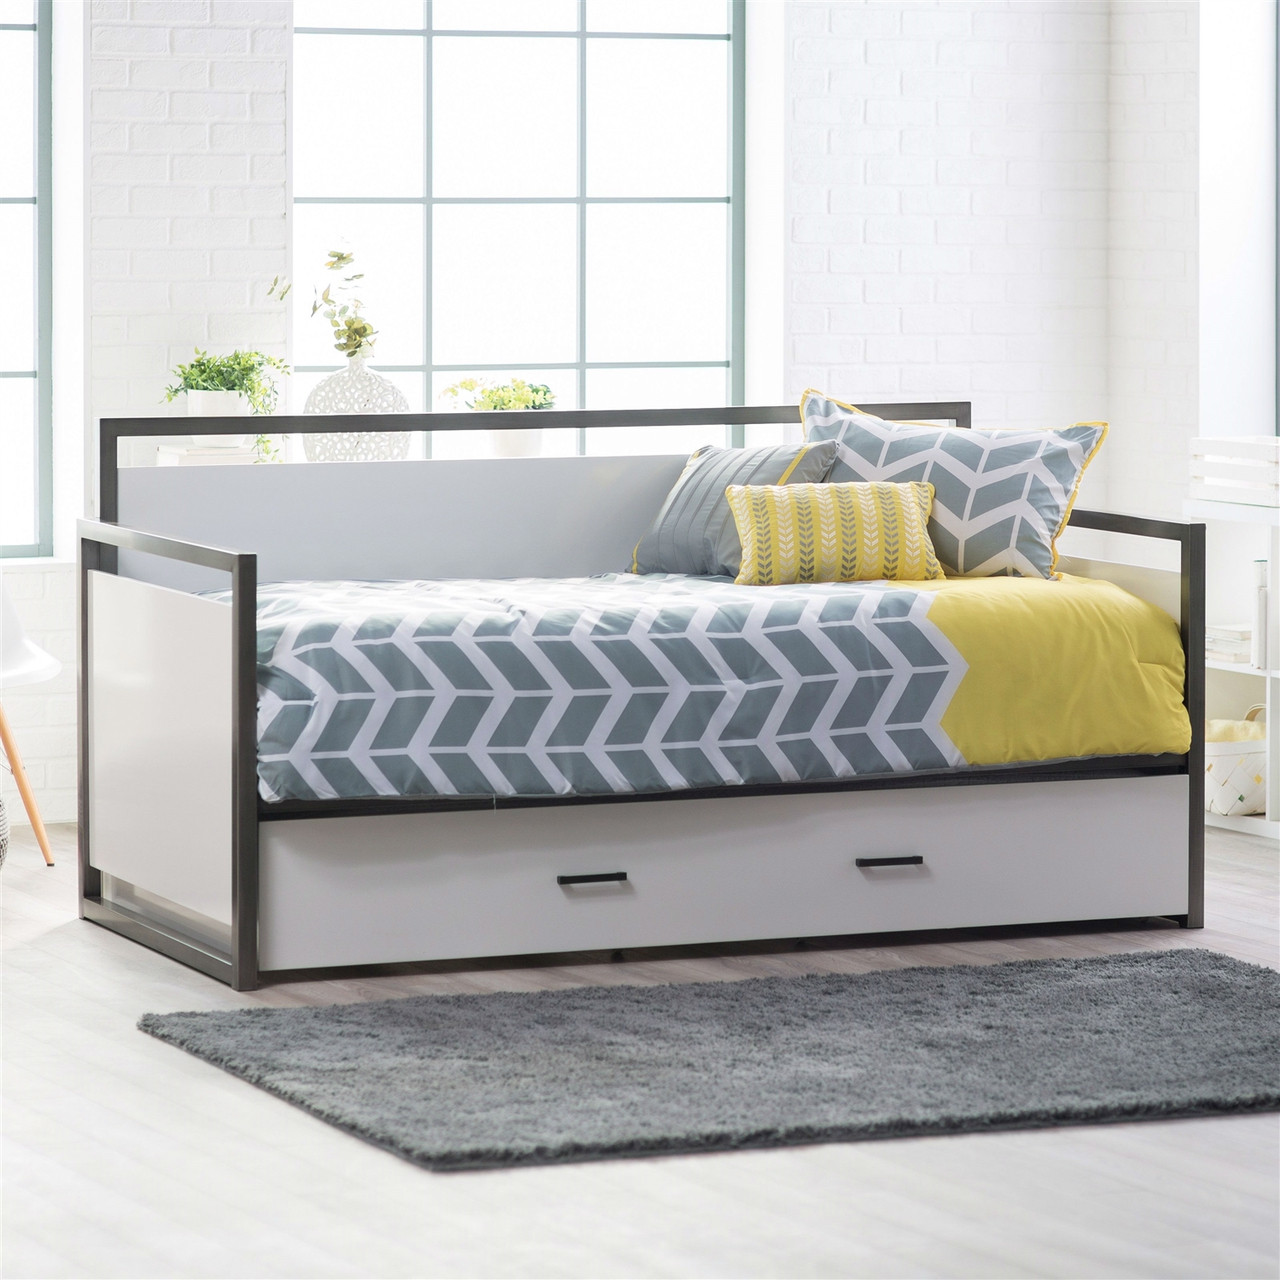 twin pull out bed